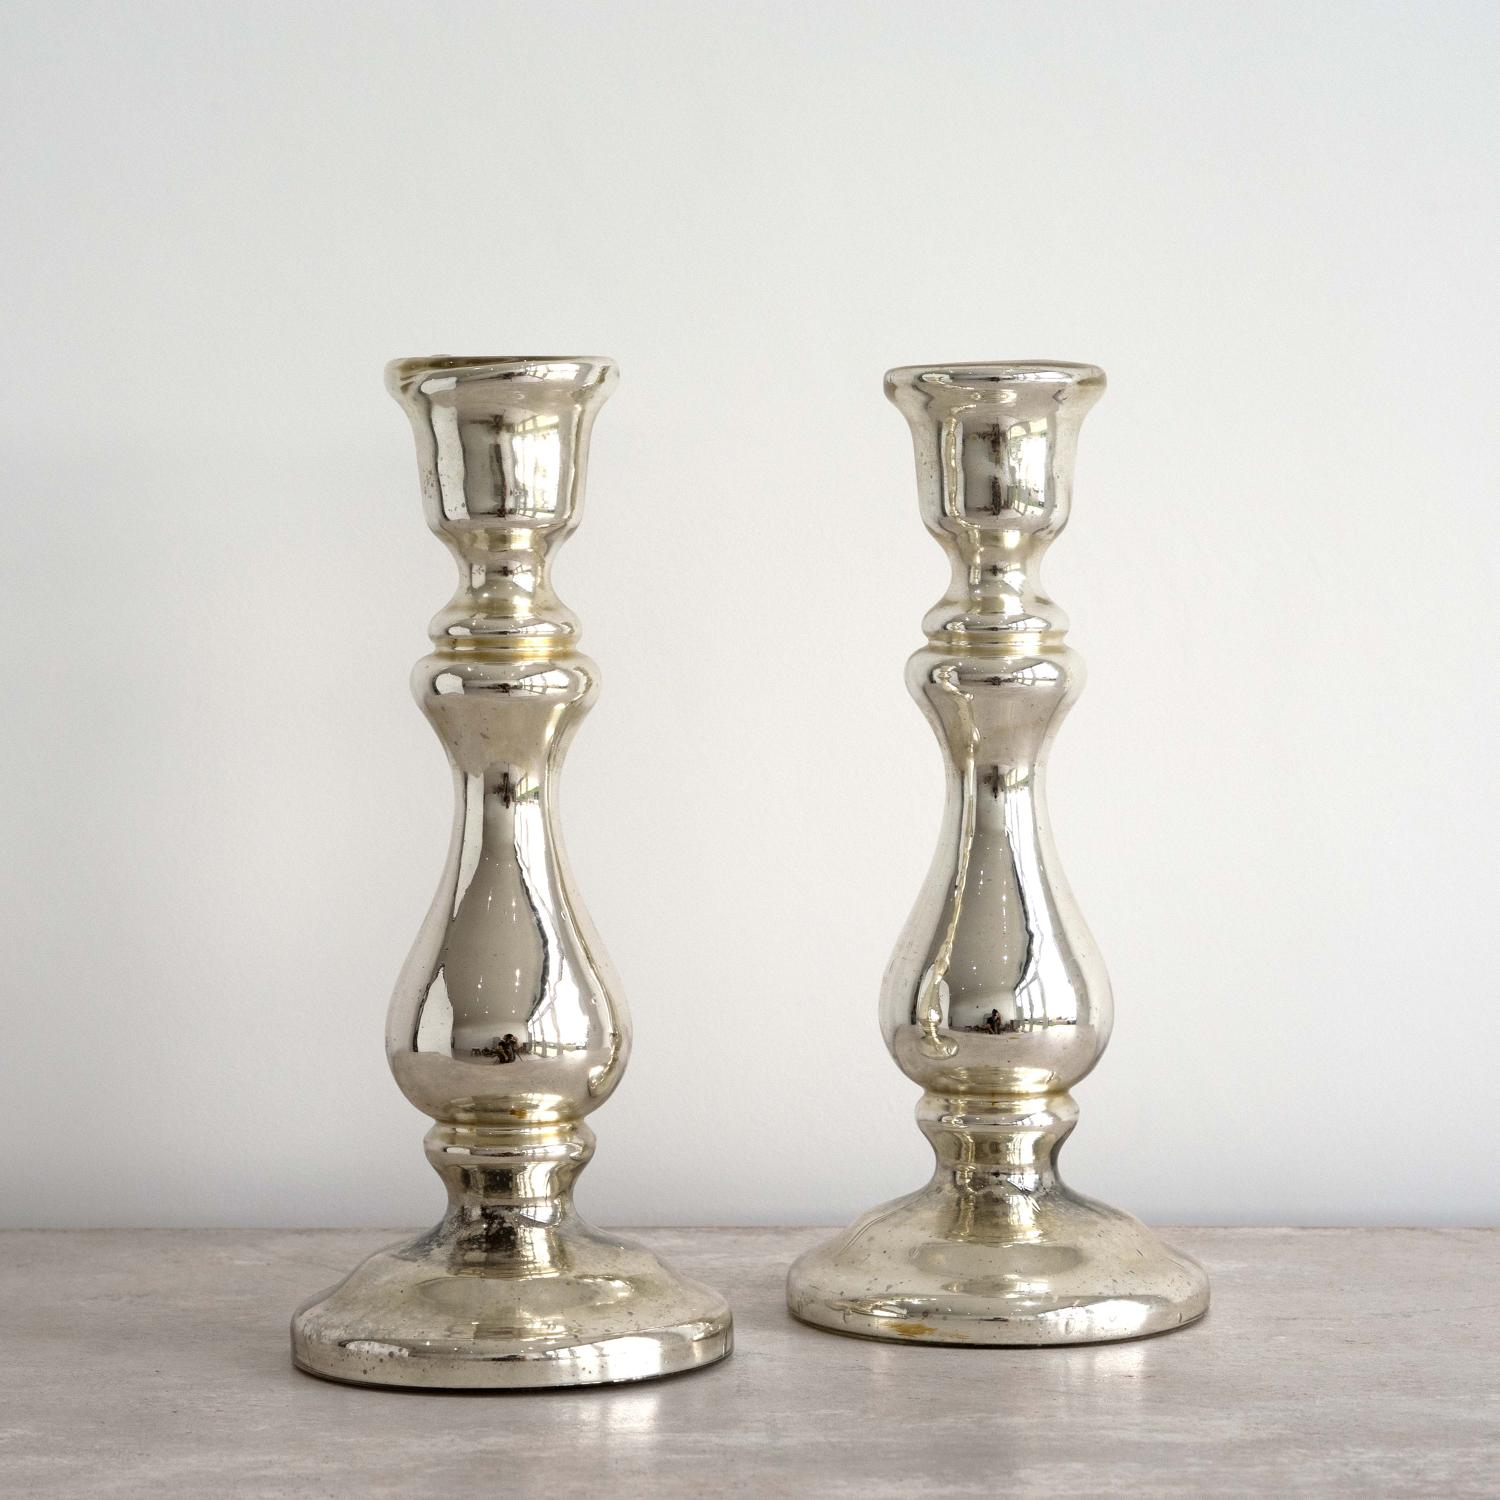 PAIR OF RARE TALL ANTIQUE MERCURY GLASS CANDLESTICKS